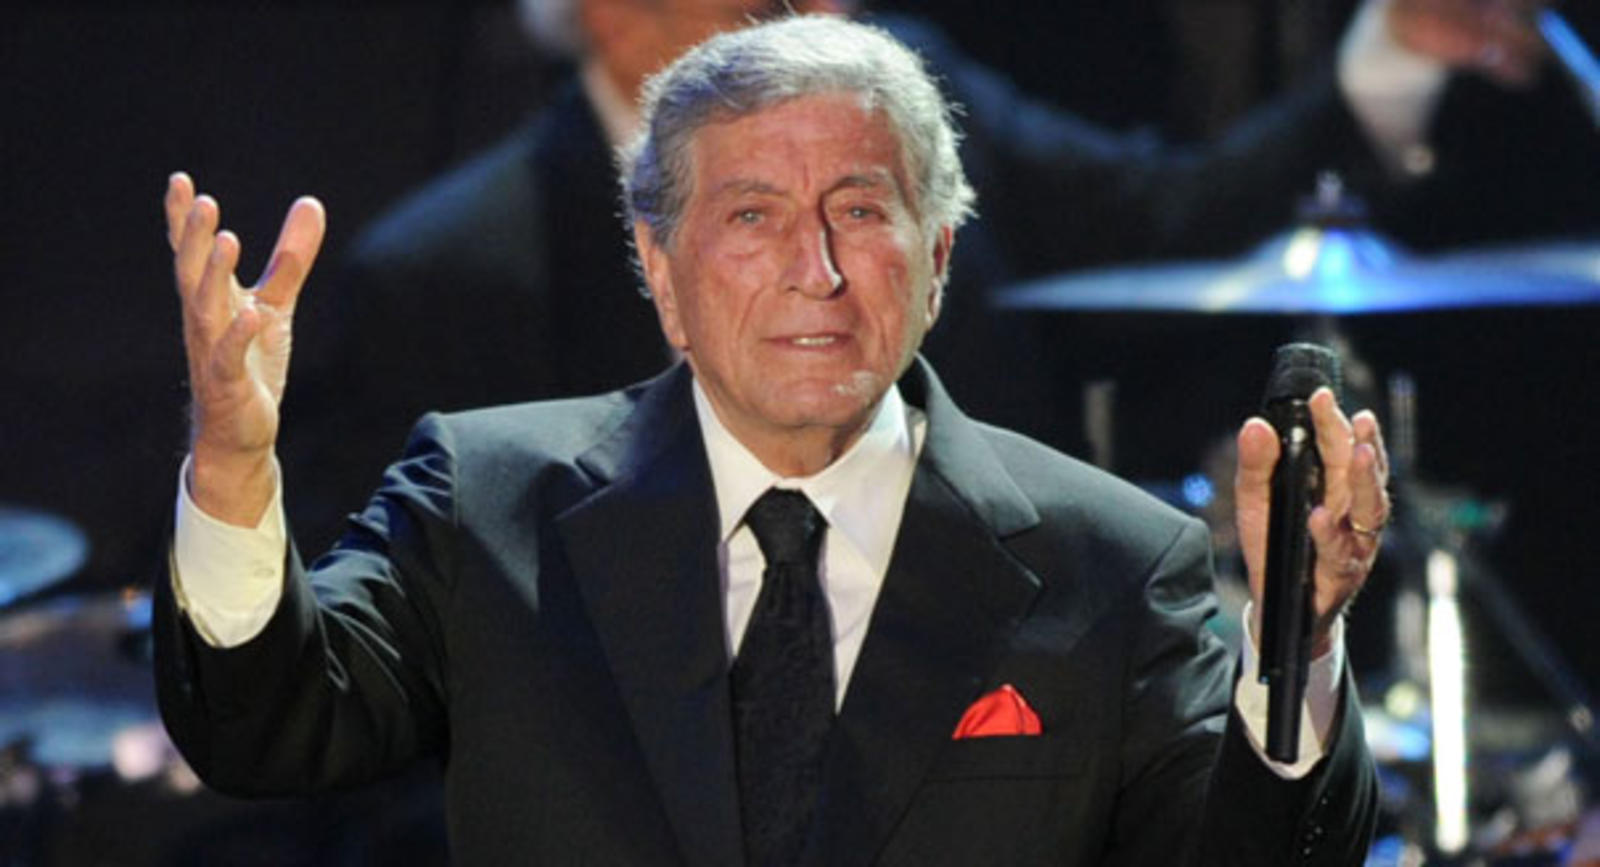 Tony Bennett @ Radio City Music Hall